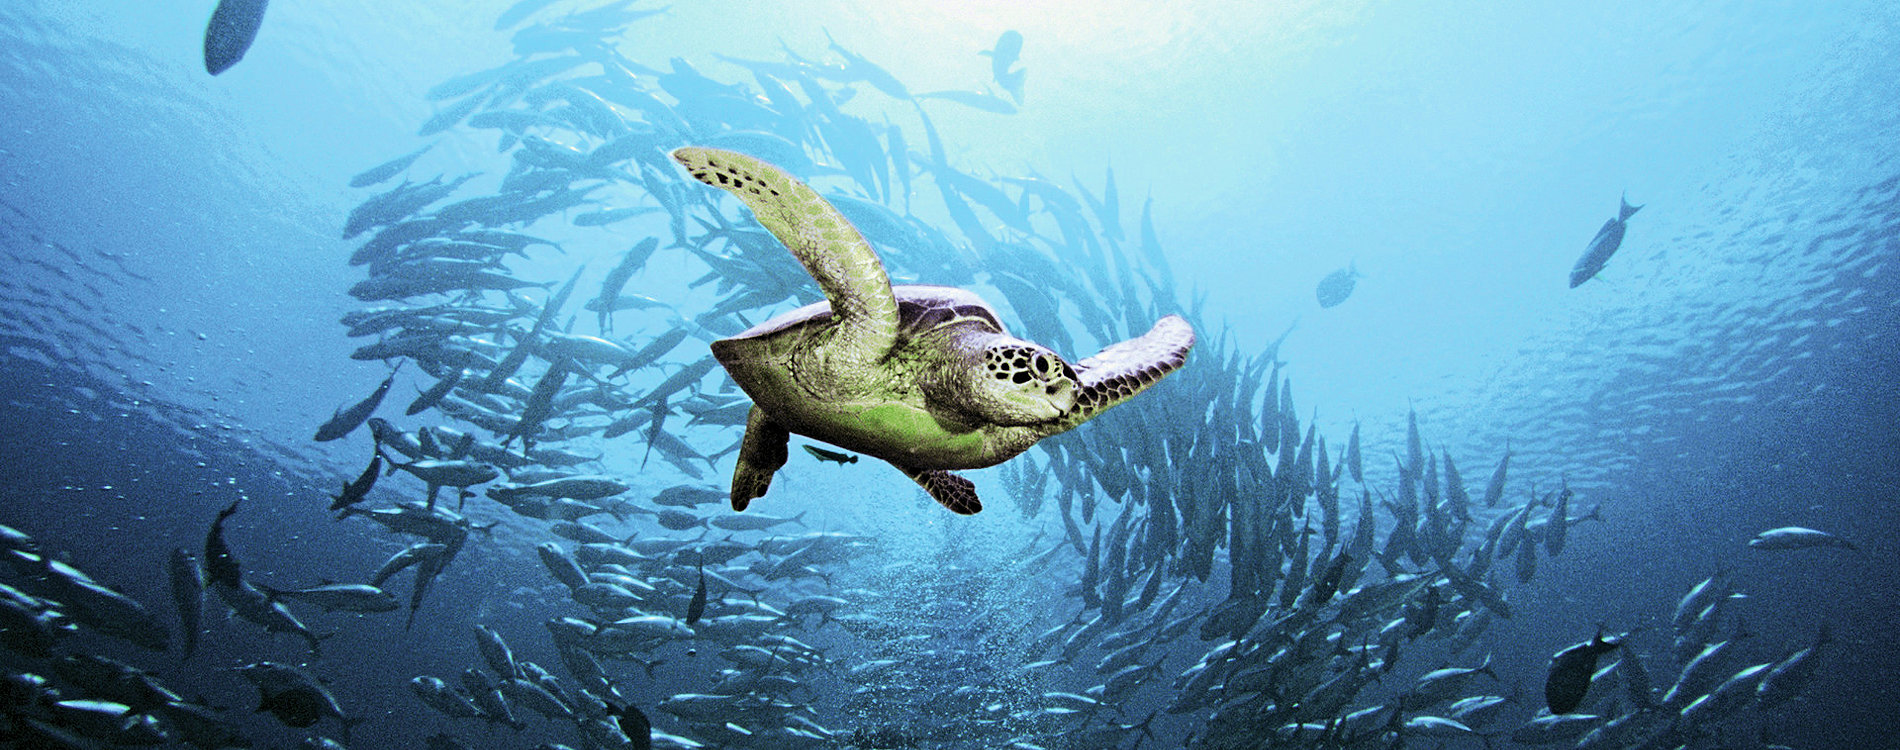 Turtle swimming with a school of fish